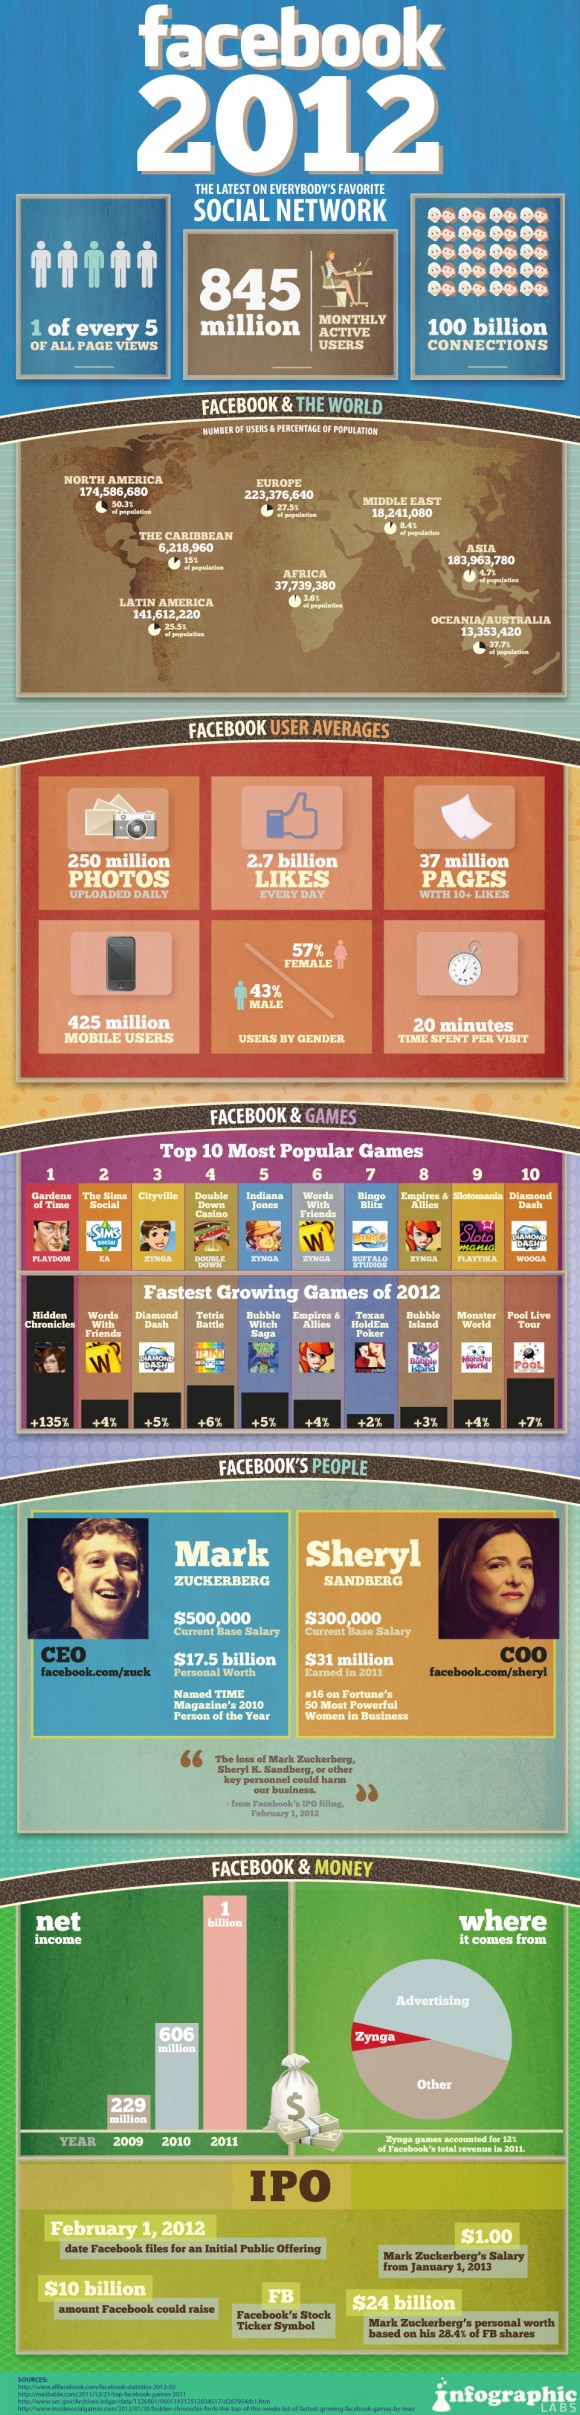 Infographic Facebook 2012